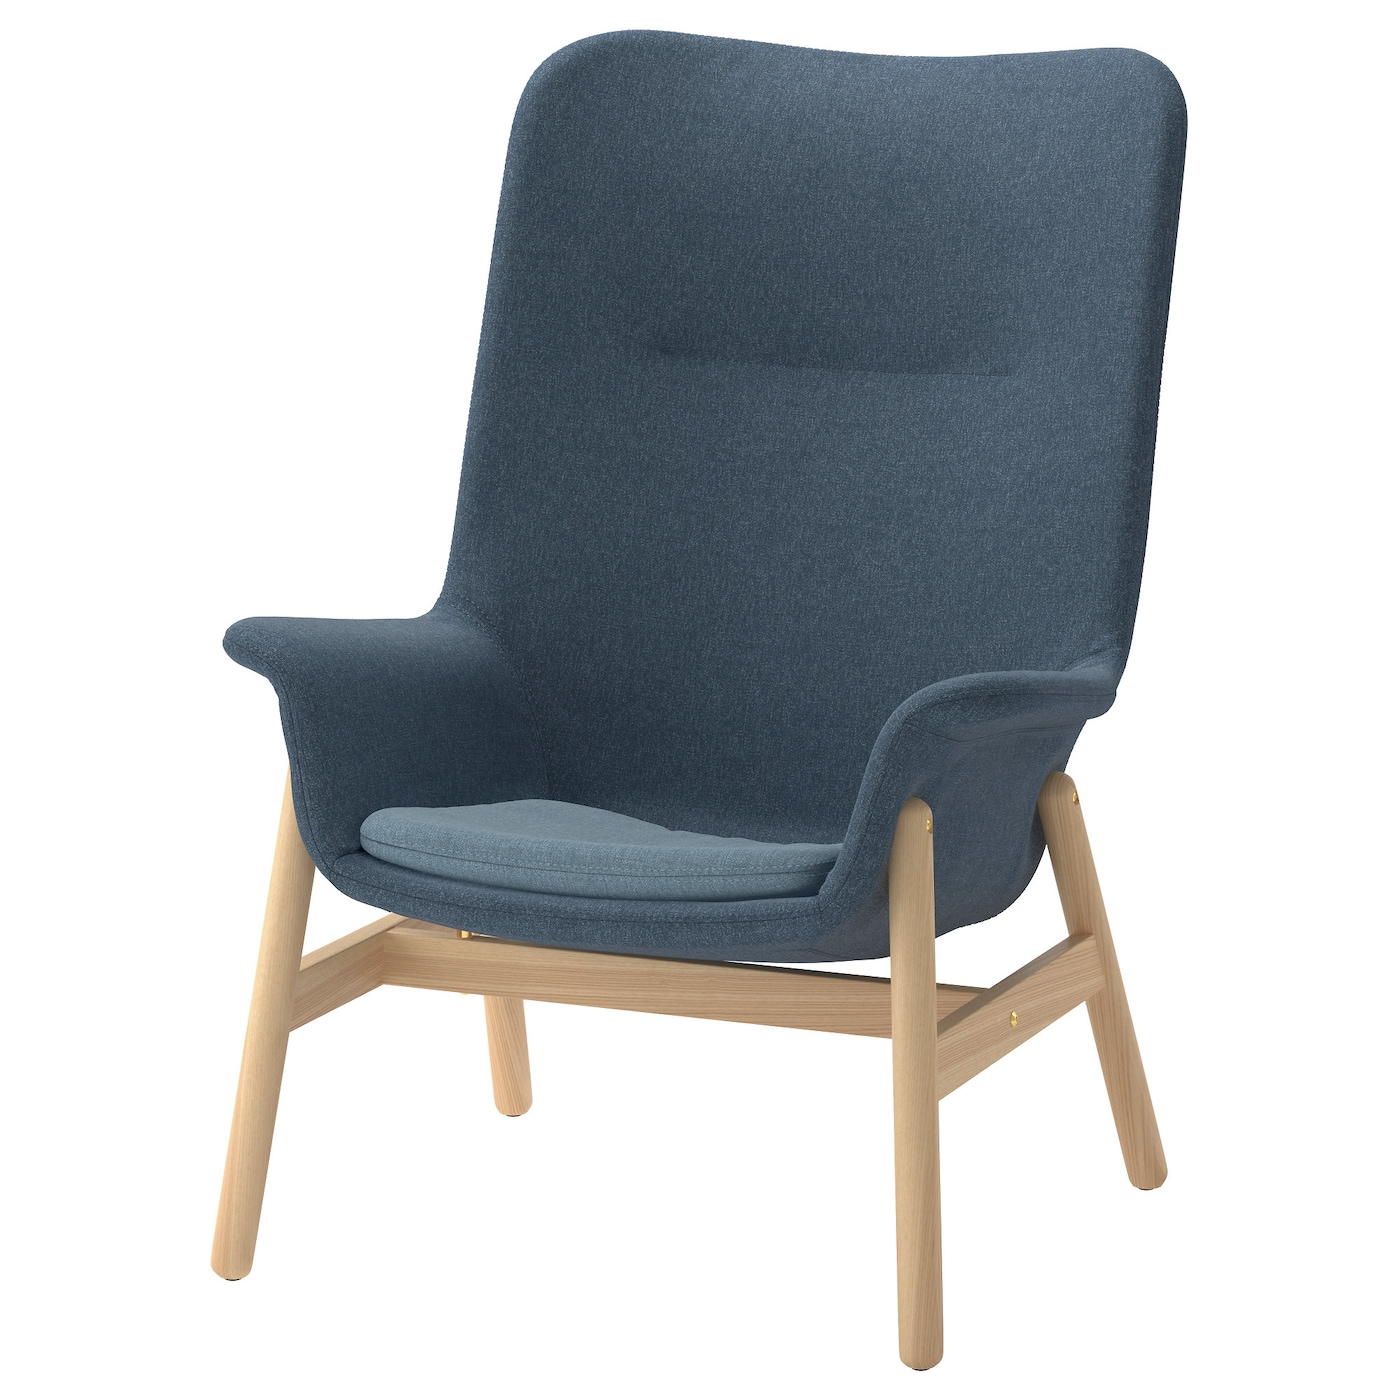 IKEA VEDBO high-back armchair 10 year guarantee. Read about the terms in the guarantee brochure.